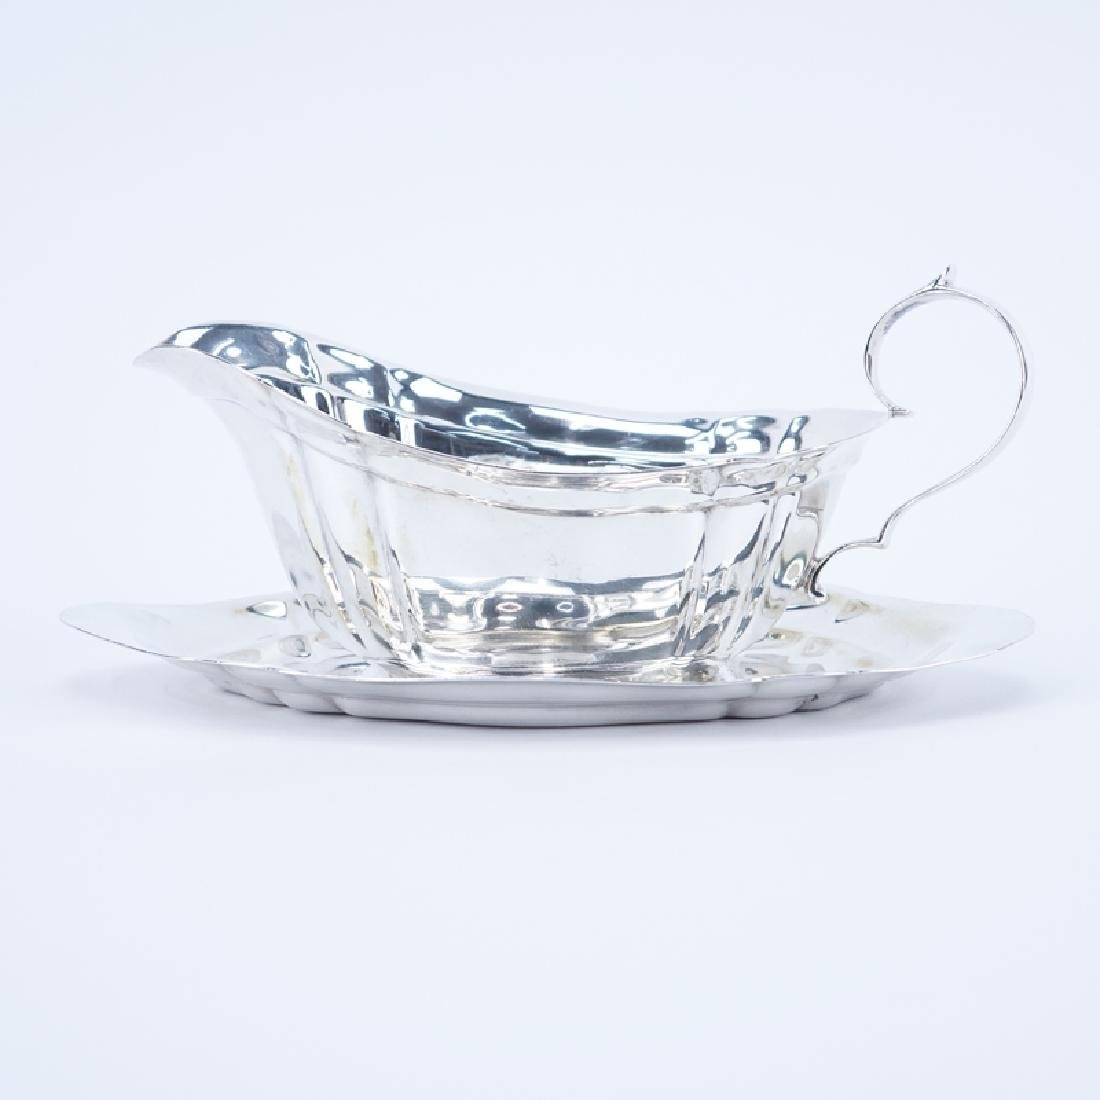 Reed and Barton Dublin Sterling Silver Gravy Boat with